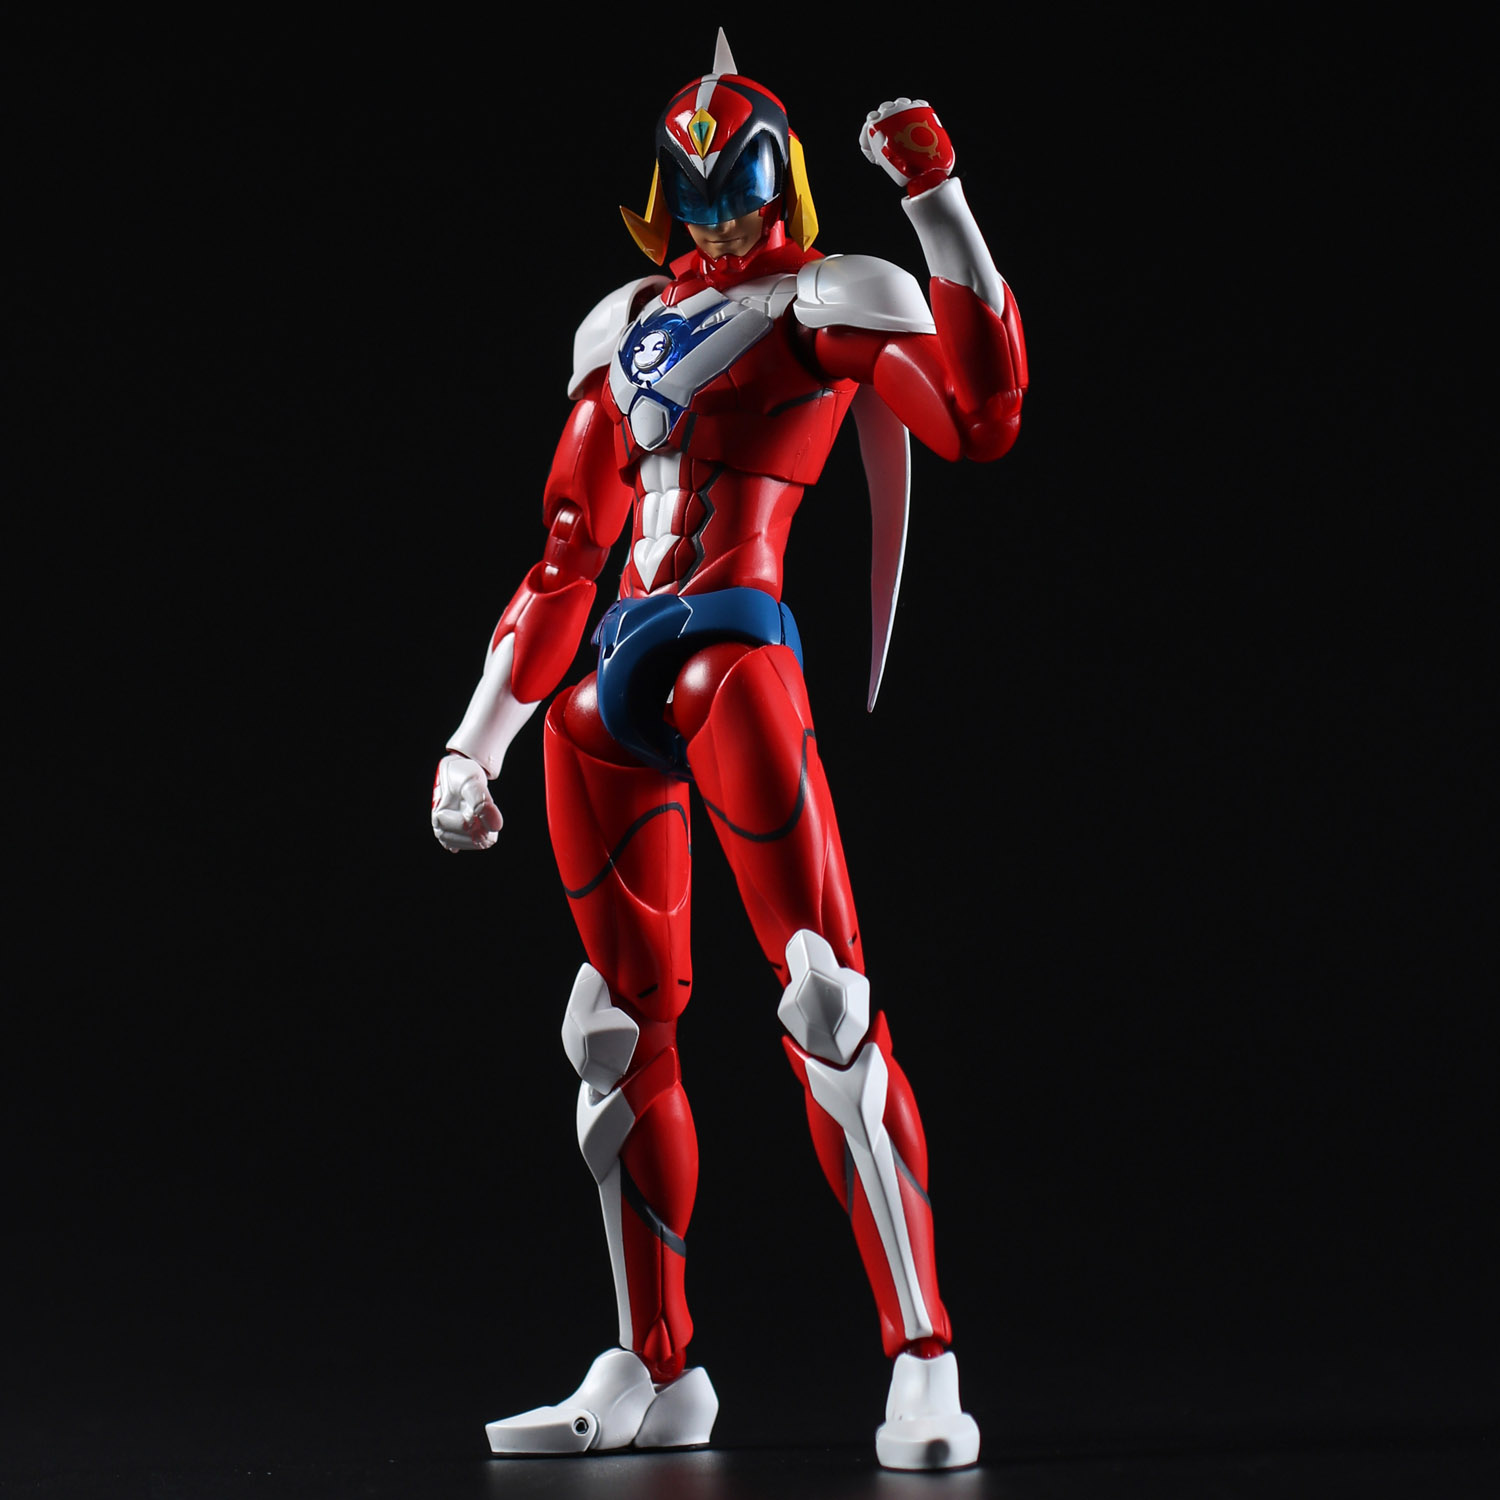 "Polimar Fighter Gear Ver. ""Infini-T Force"" (SEN-TI-NEL Tatsunoko Heroes Fighting Gear)"